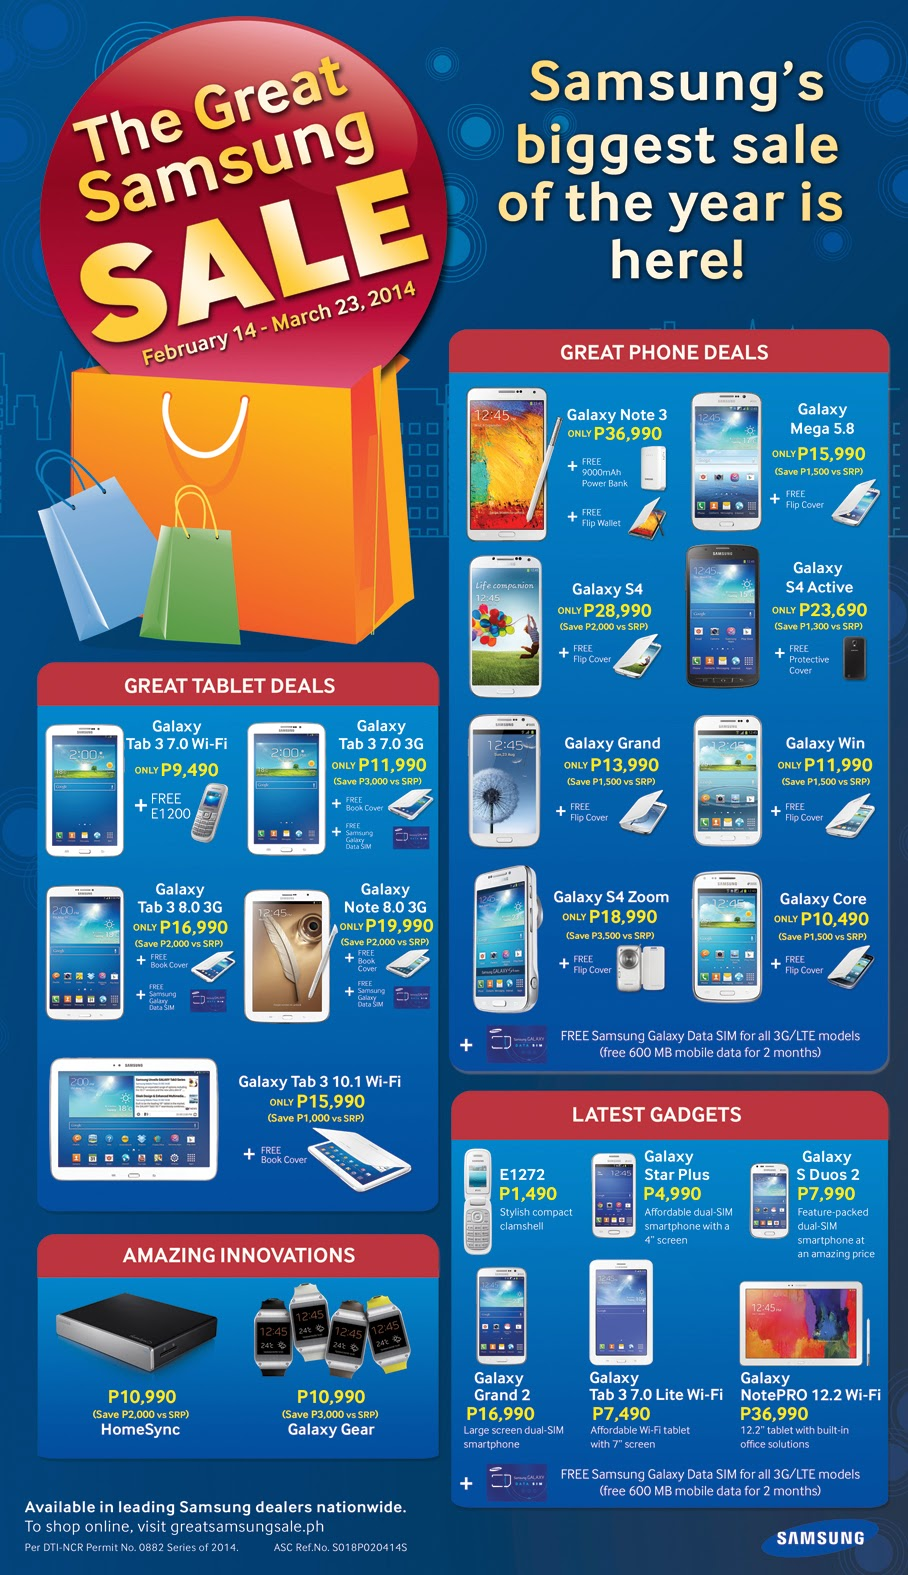 The Great Samsung Sale of February 2014